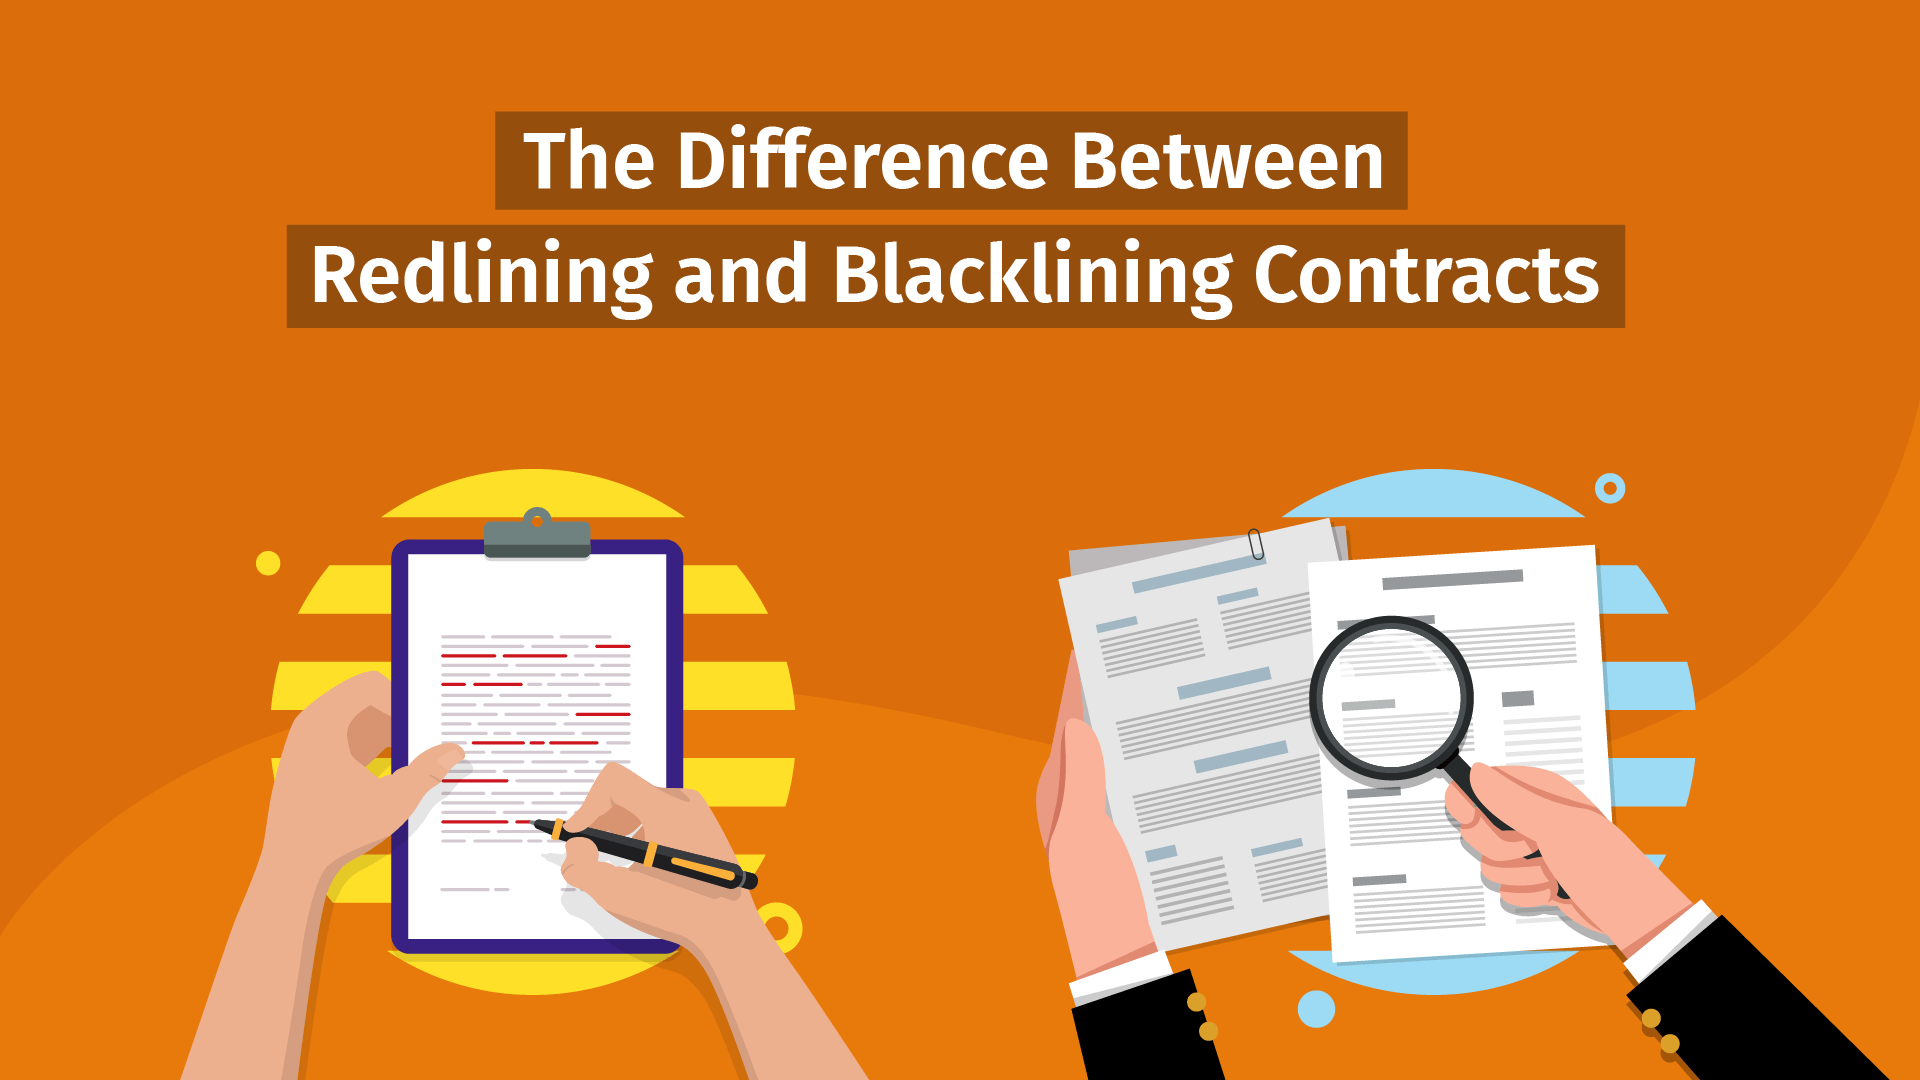 redlining and blacklining contracts